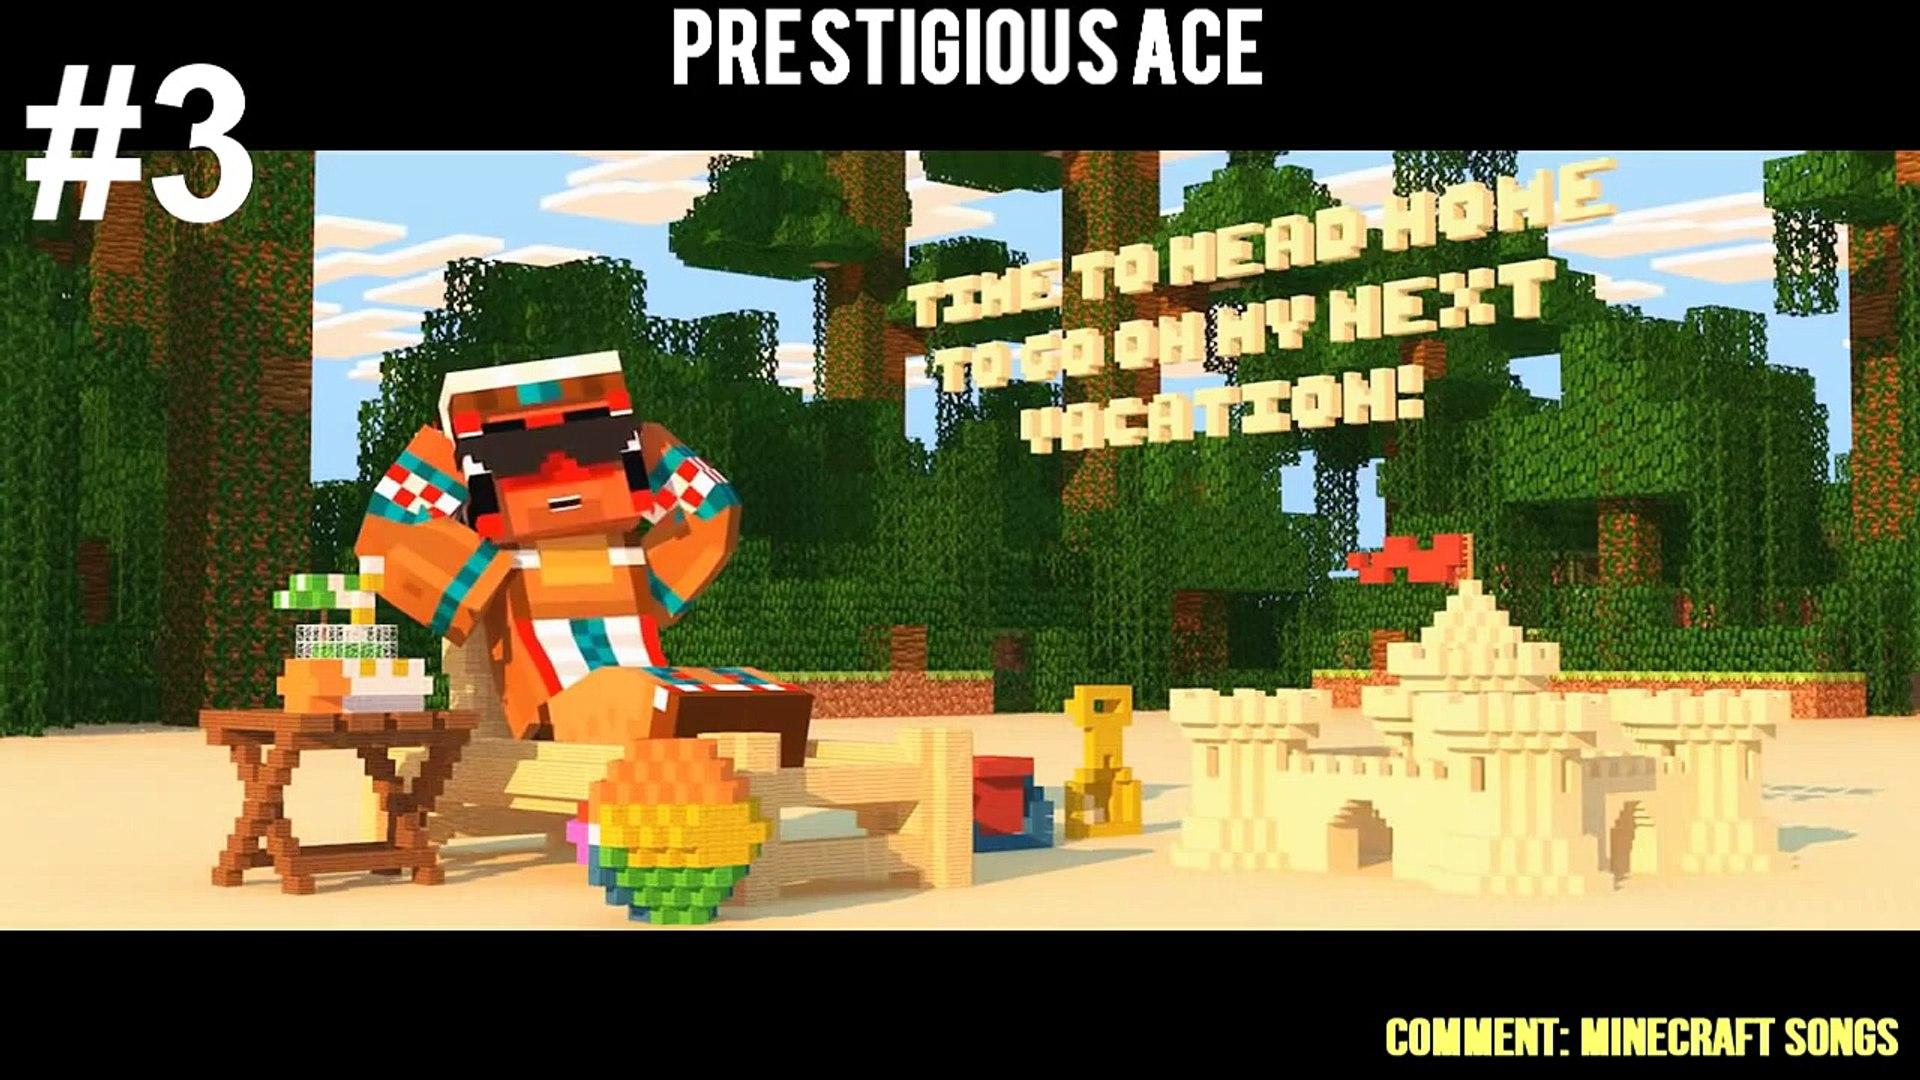 Top 5 Minecraft Song - February 2015 Best Minecraft Songs Animations Parody Parodies 2015